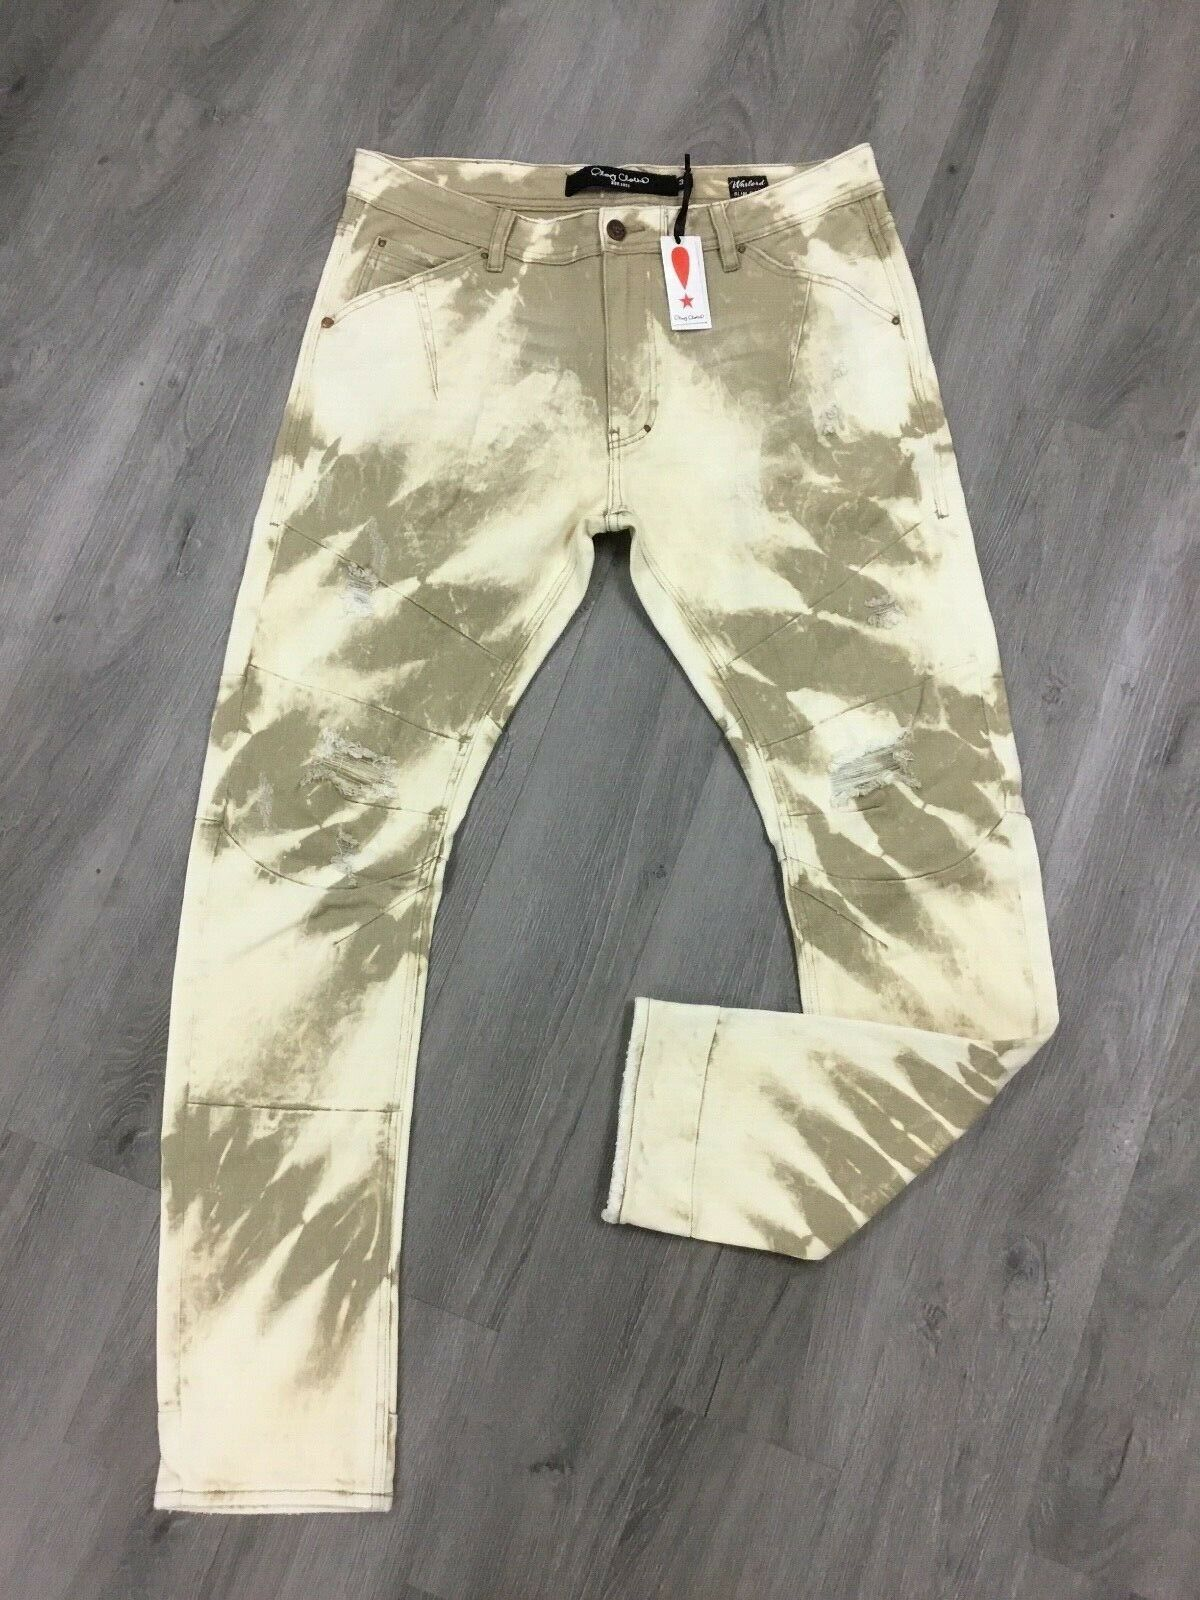 PLAY CLOTHS MENS TAN MOUNTAIN DOG WARLORD DISTRESSED JEANS SIZE 40 NEW RETAIL118